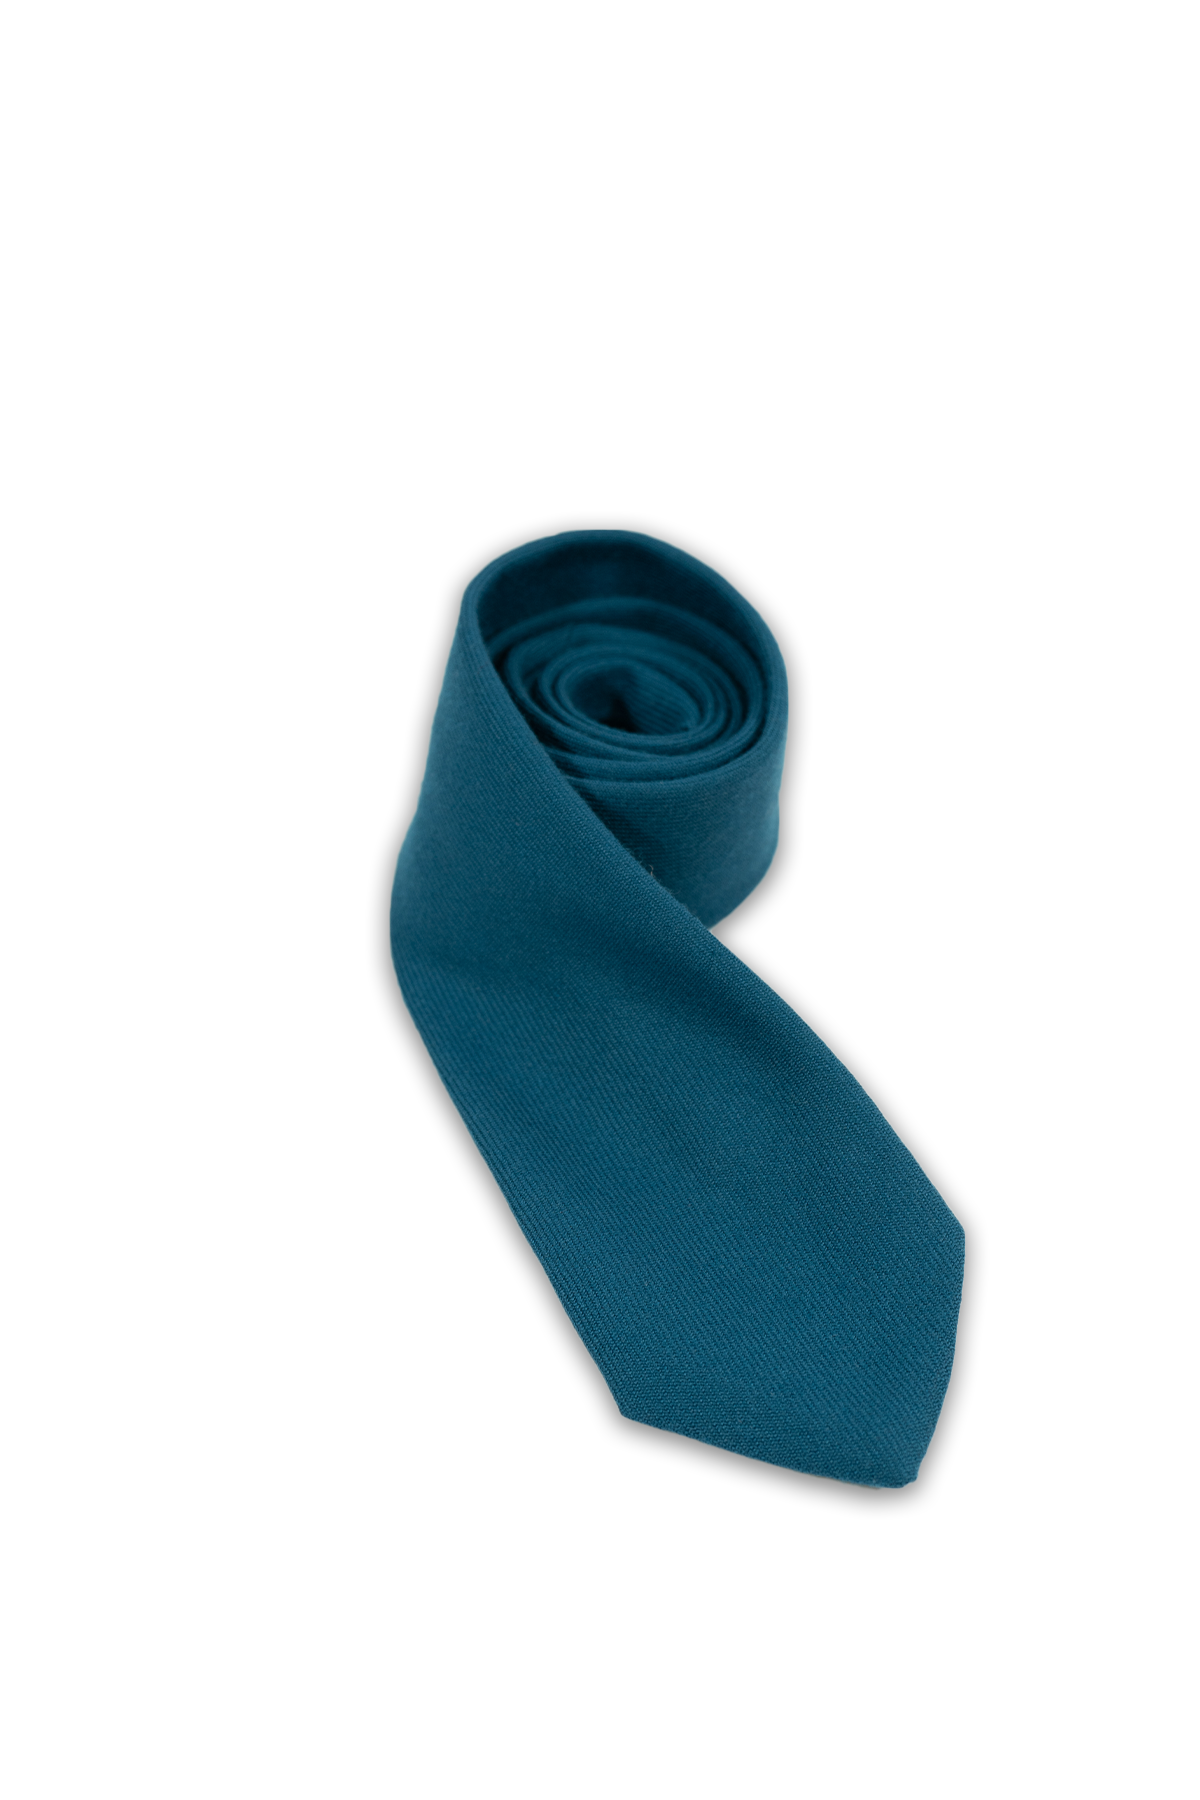 Ancient Blue Hire Tie